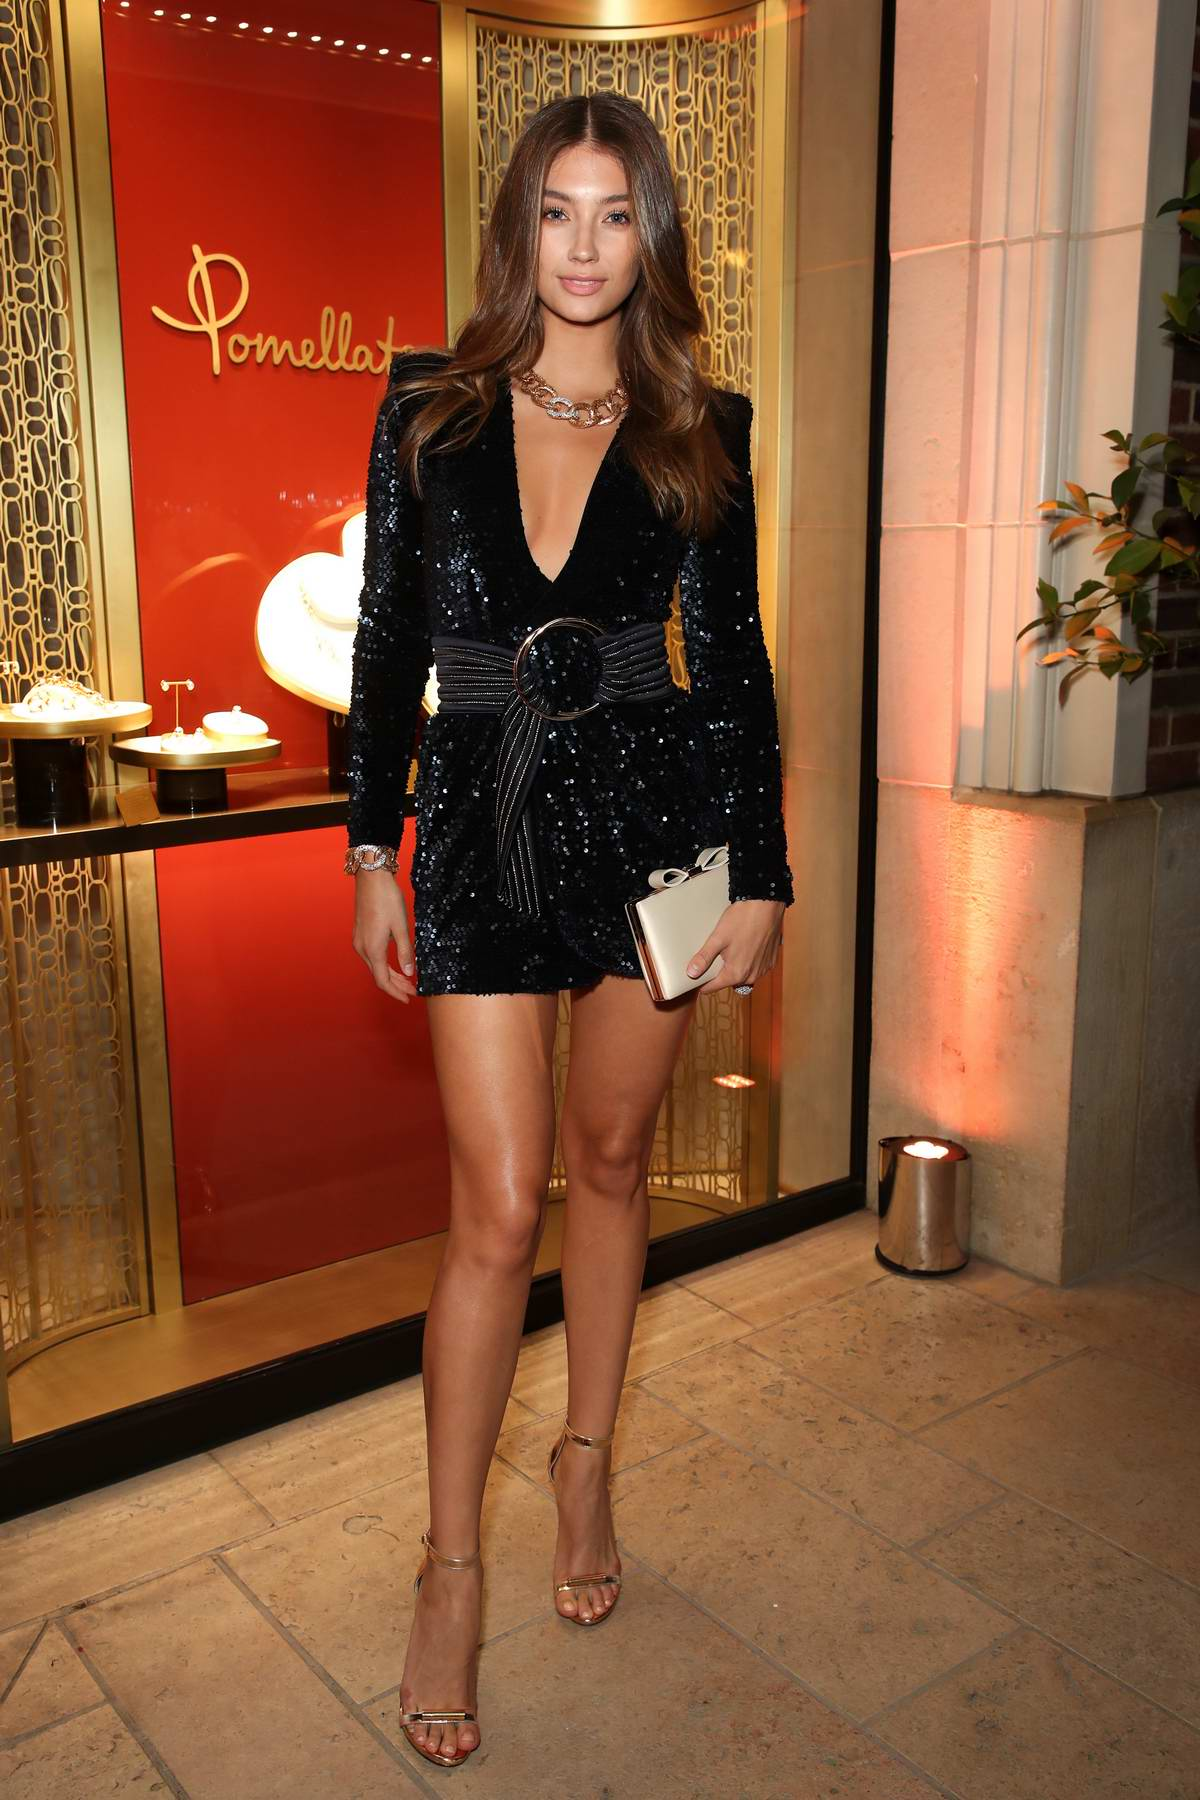 Lorena Rae attends Pomellato Beverly Hills Boutique party in Los Angeles